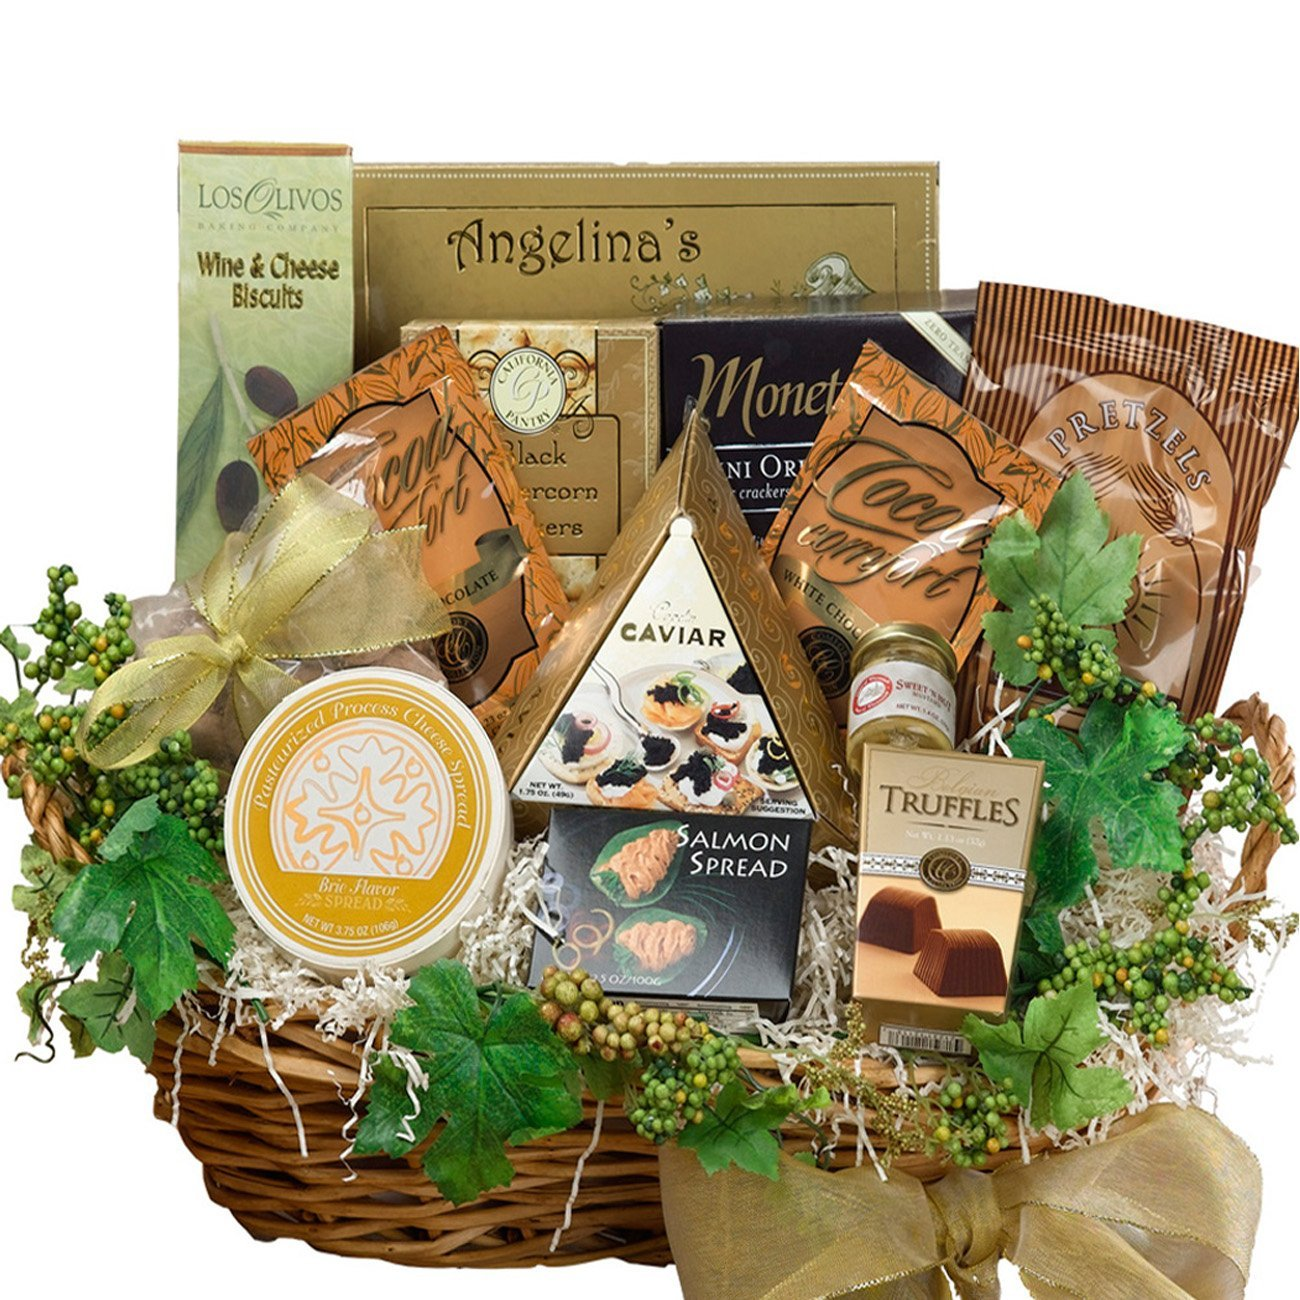 Savory Sophisticated Gourmet Food Gift Basket with Caviar, LARGE (Candy Option) by